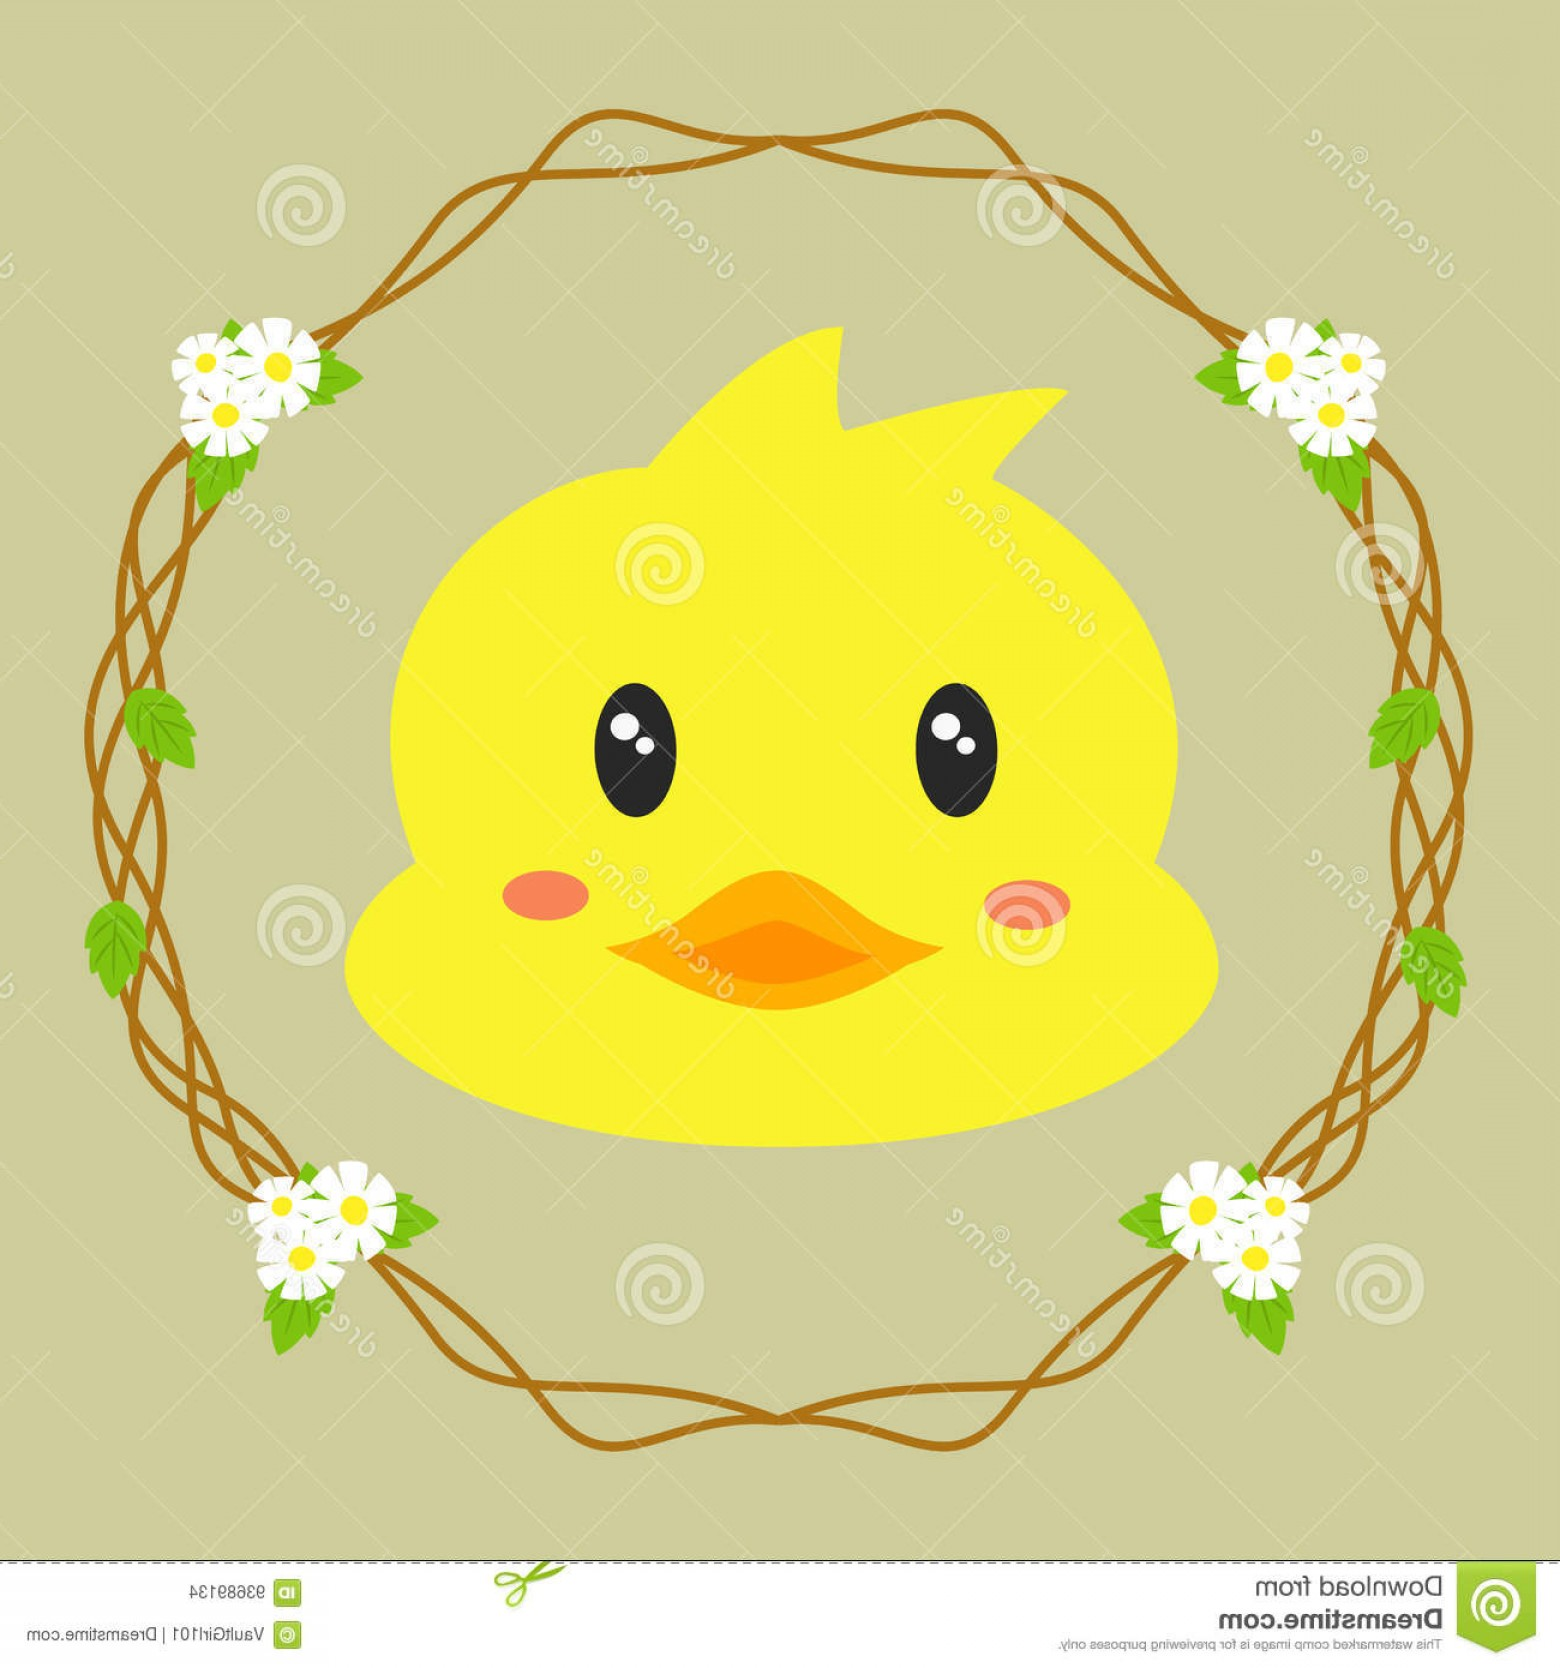 Cartoon Duck Vector: Stock Illustration Cute Duck Vector Floral Wreath Background Image